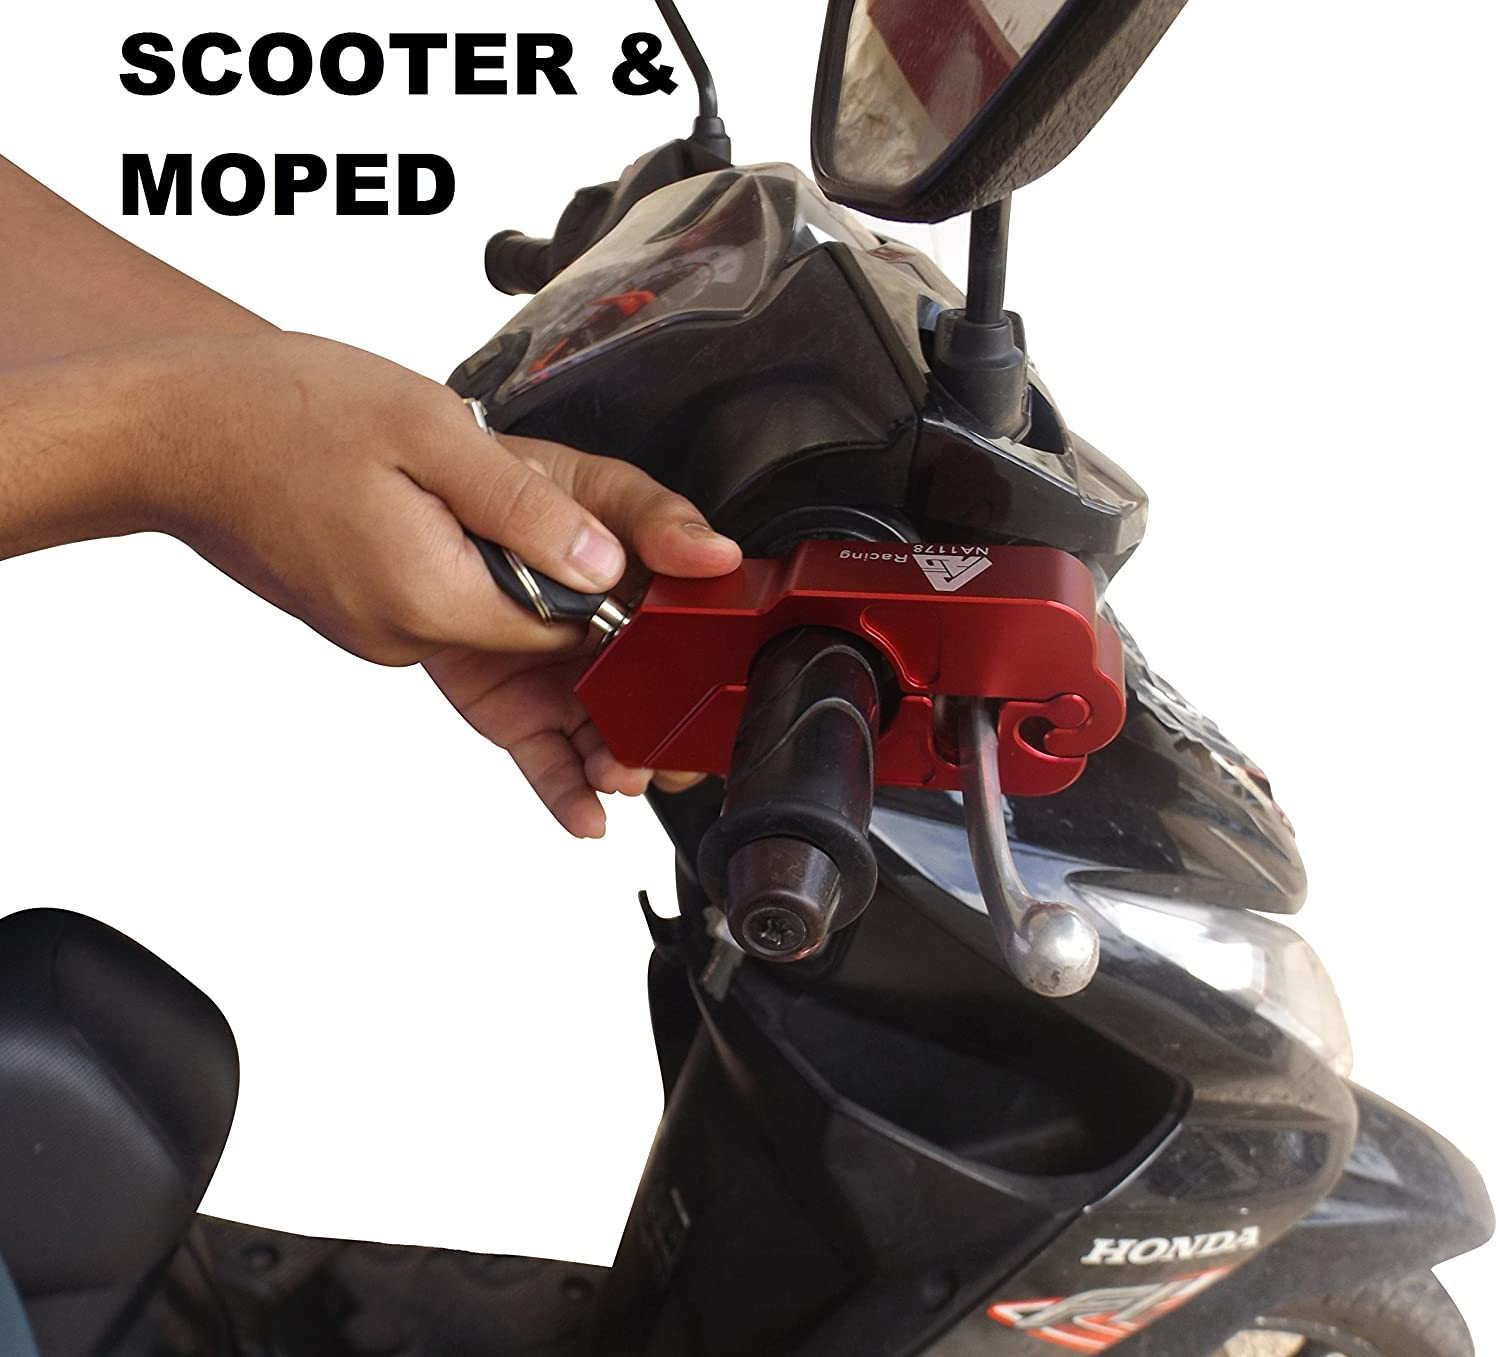 Motorcycle Lock A Grip Throttle Brake Handlebar Lock to Secure a Bike Scooter Moped or ATV in Under 5 Seconds From BigPantha Red